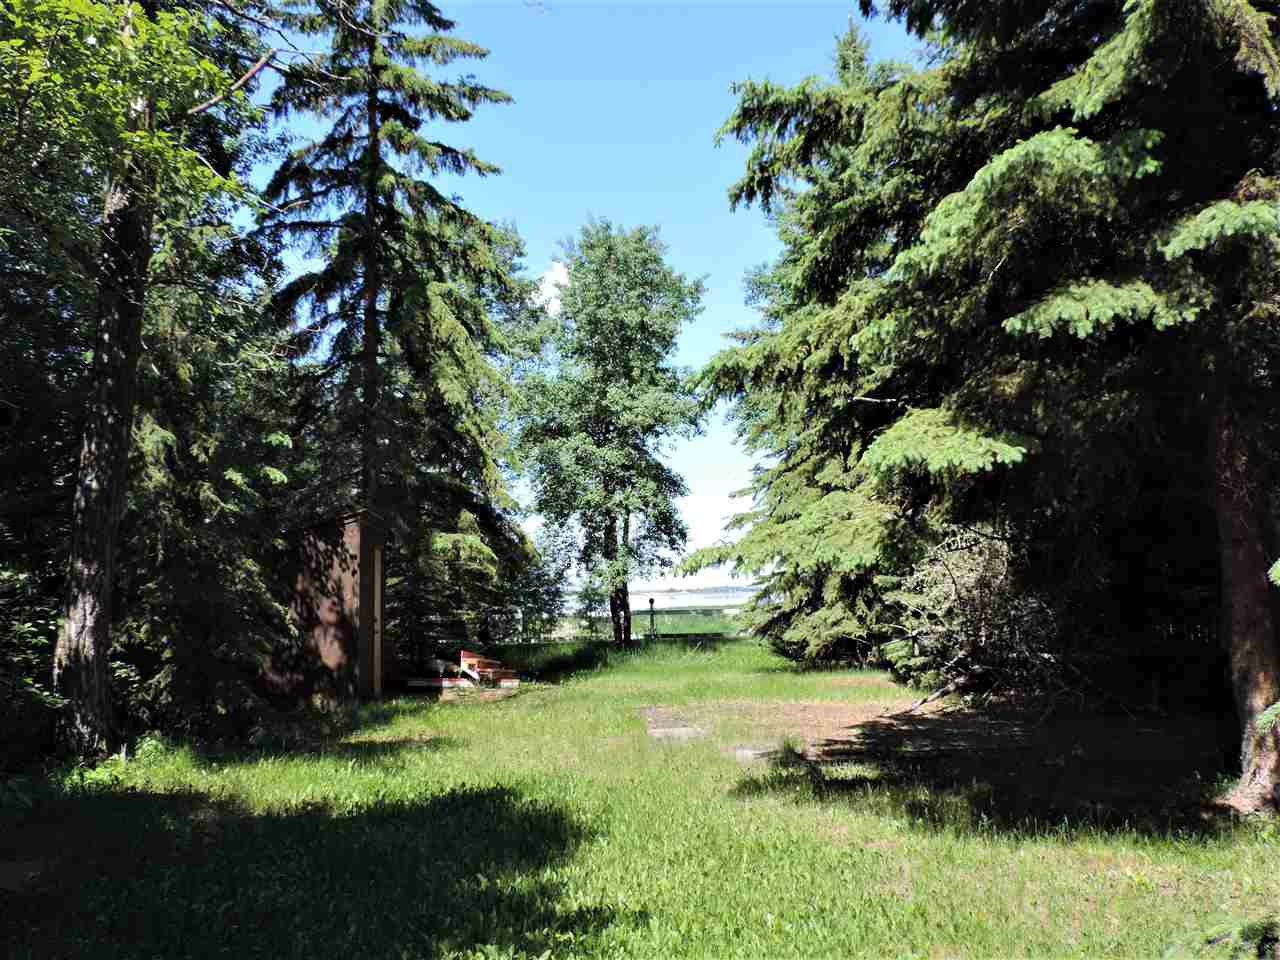 Main Photo: 8 Beech Ave & Pine Parkway: Rural Wetaskiwin County Rural Land/Vacant Lot for sale : MLS®# E4195404